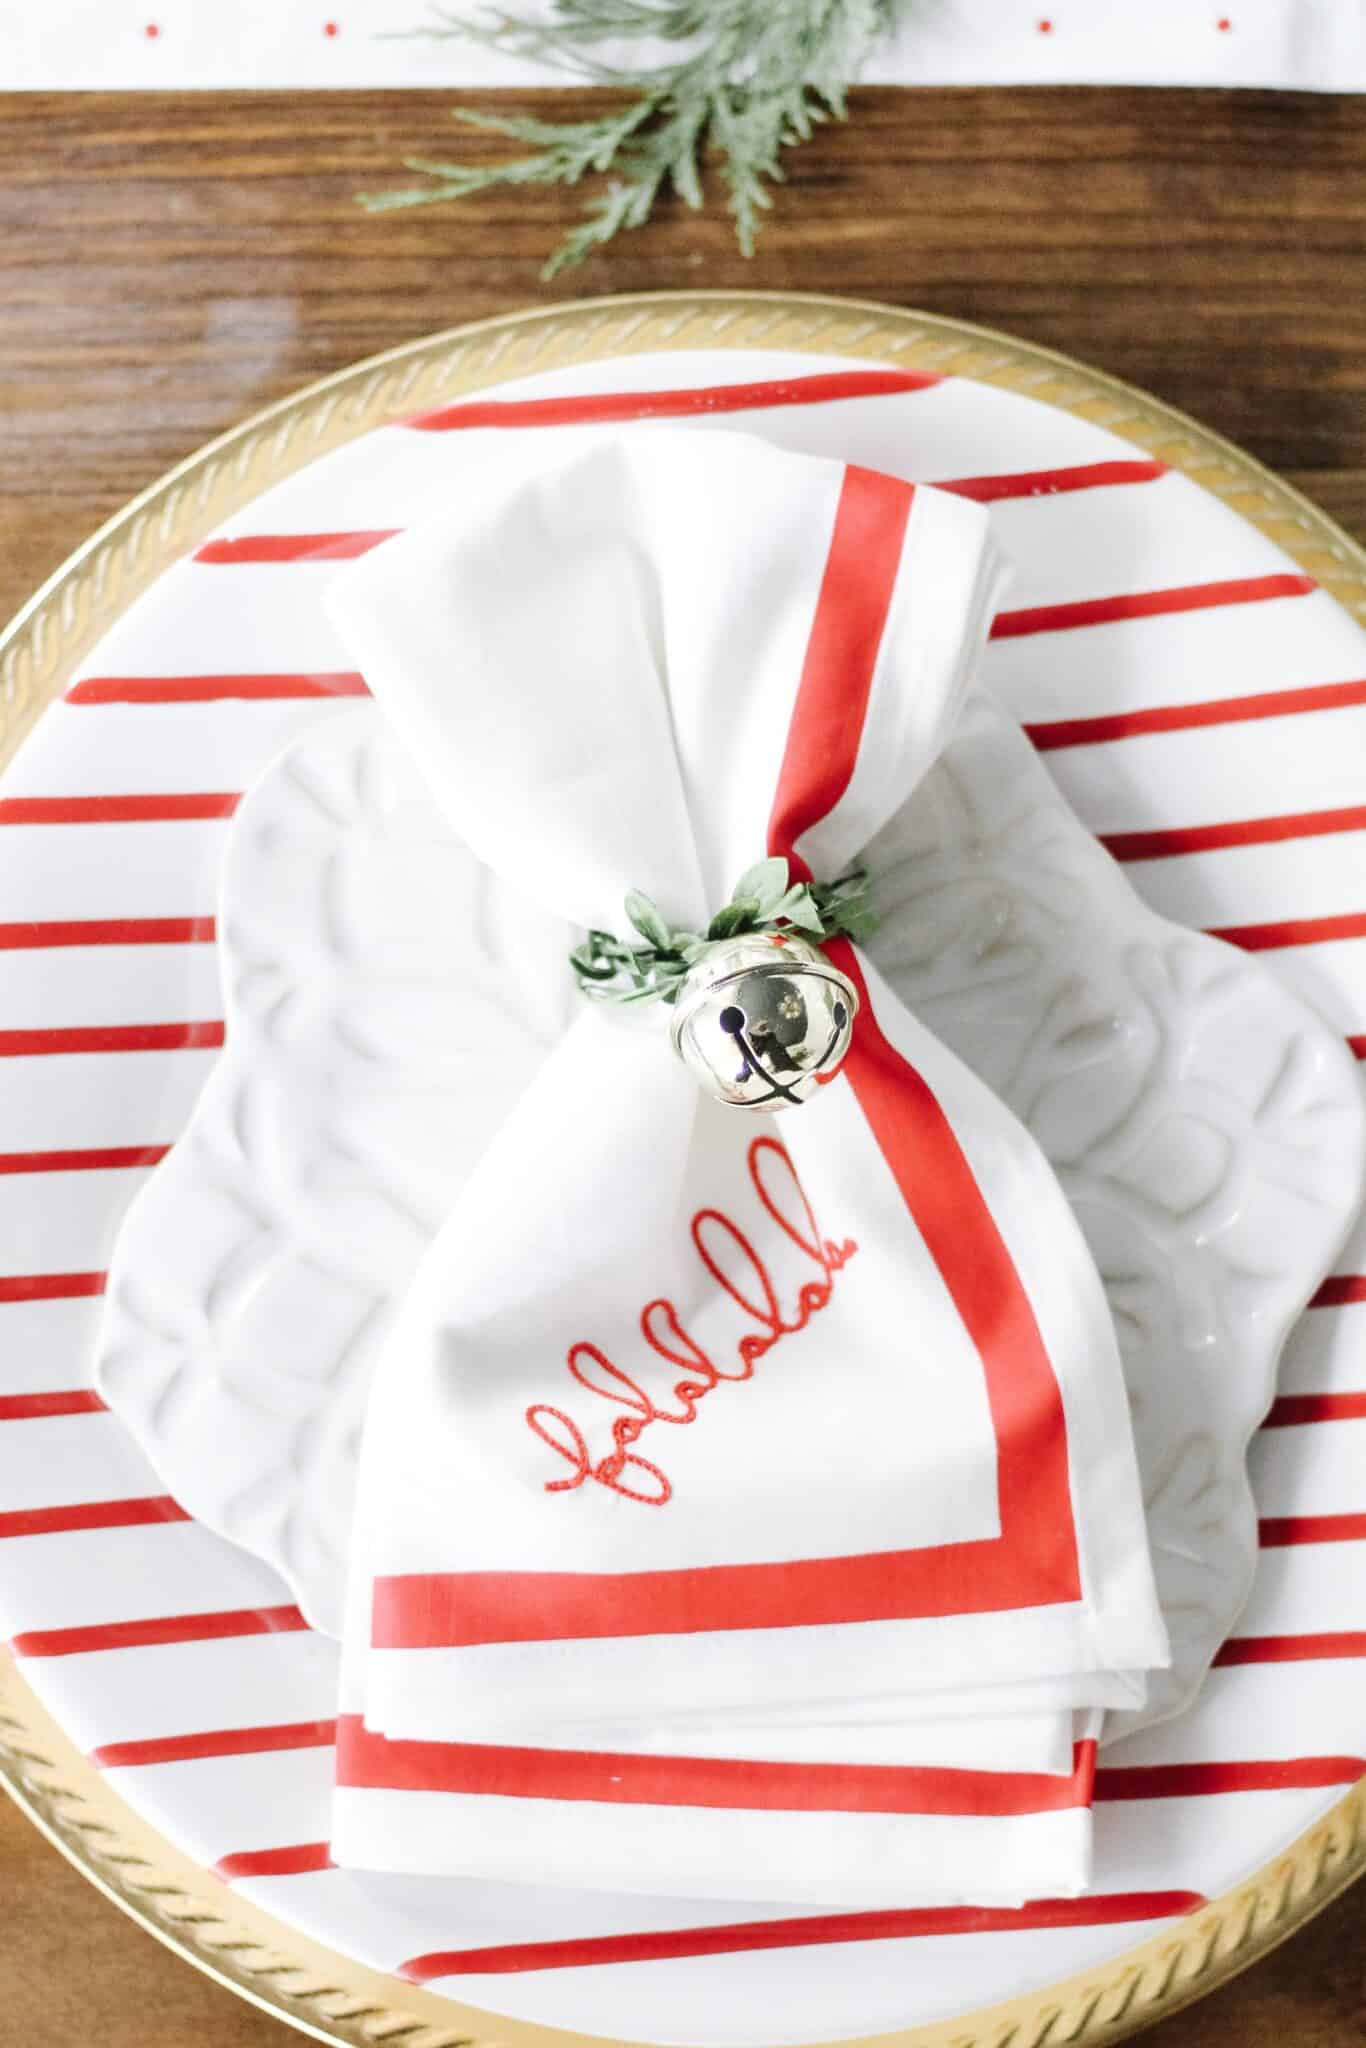 Falala napkin on red striped plate